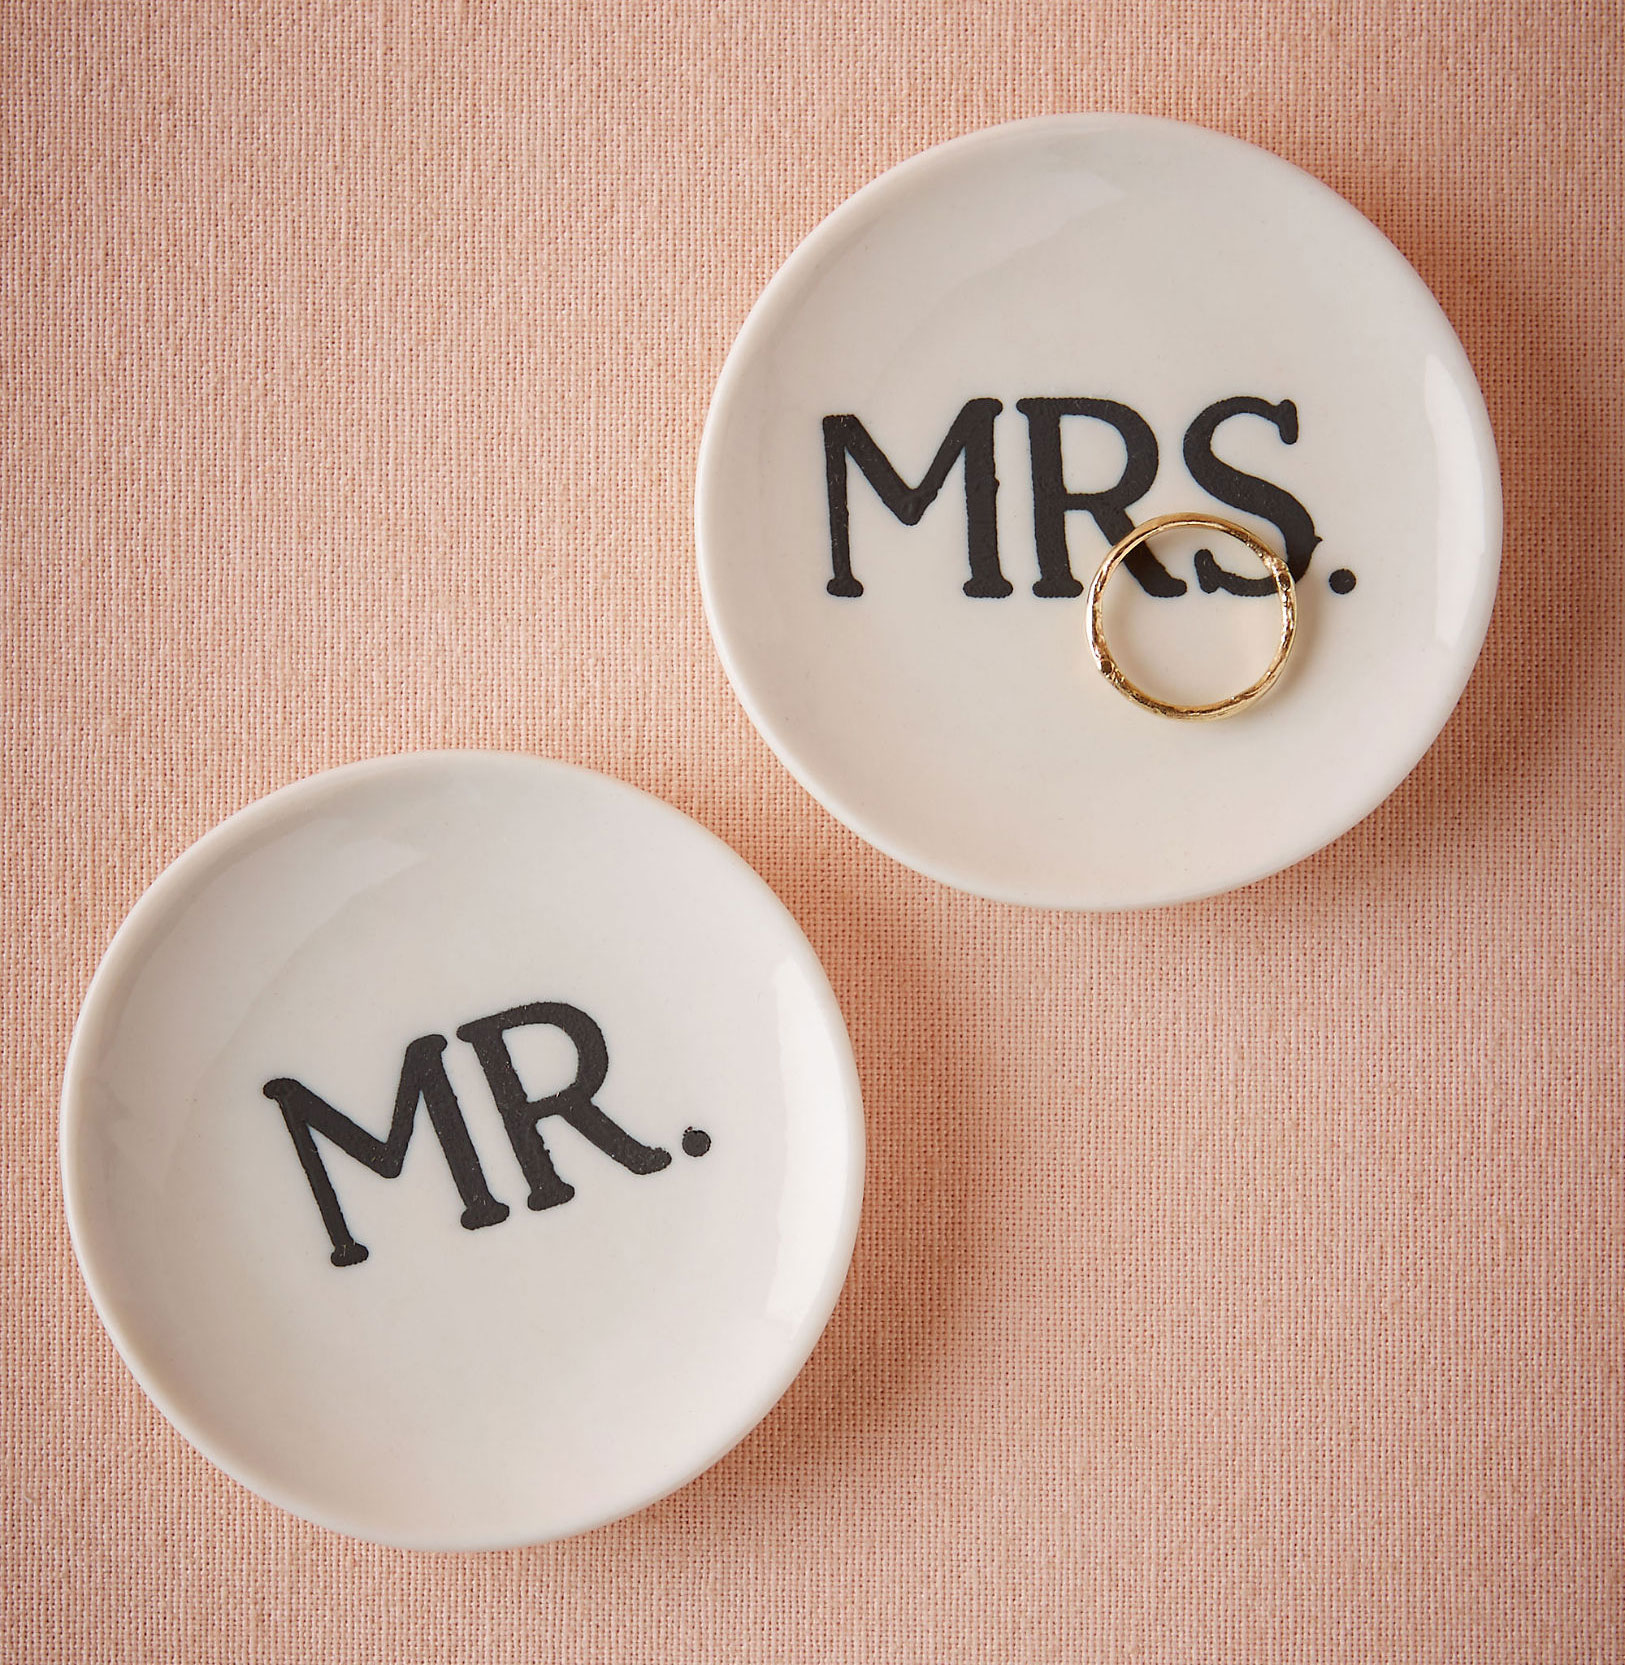 Mr and Mrs ring dishes dish from BHLDN newylwed gift ideas